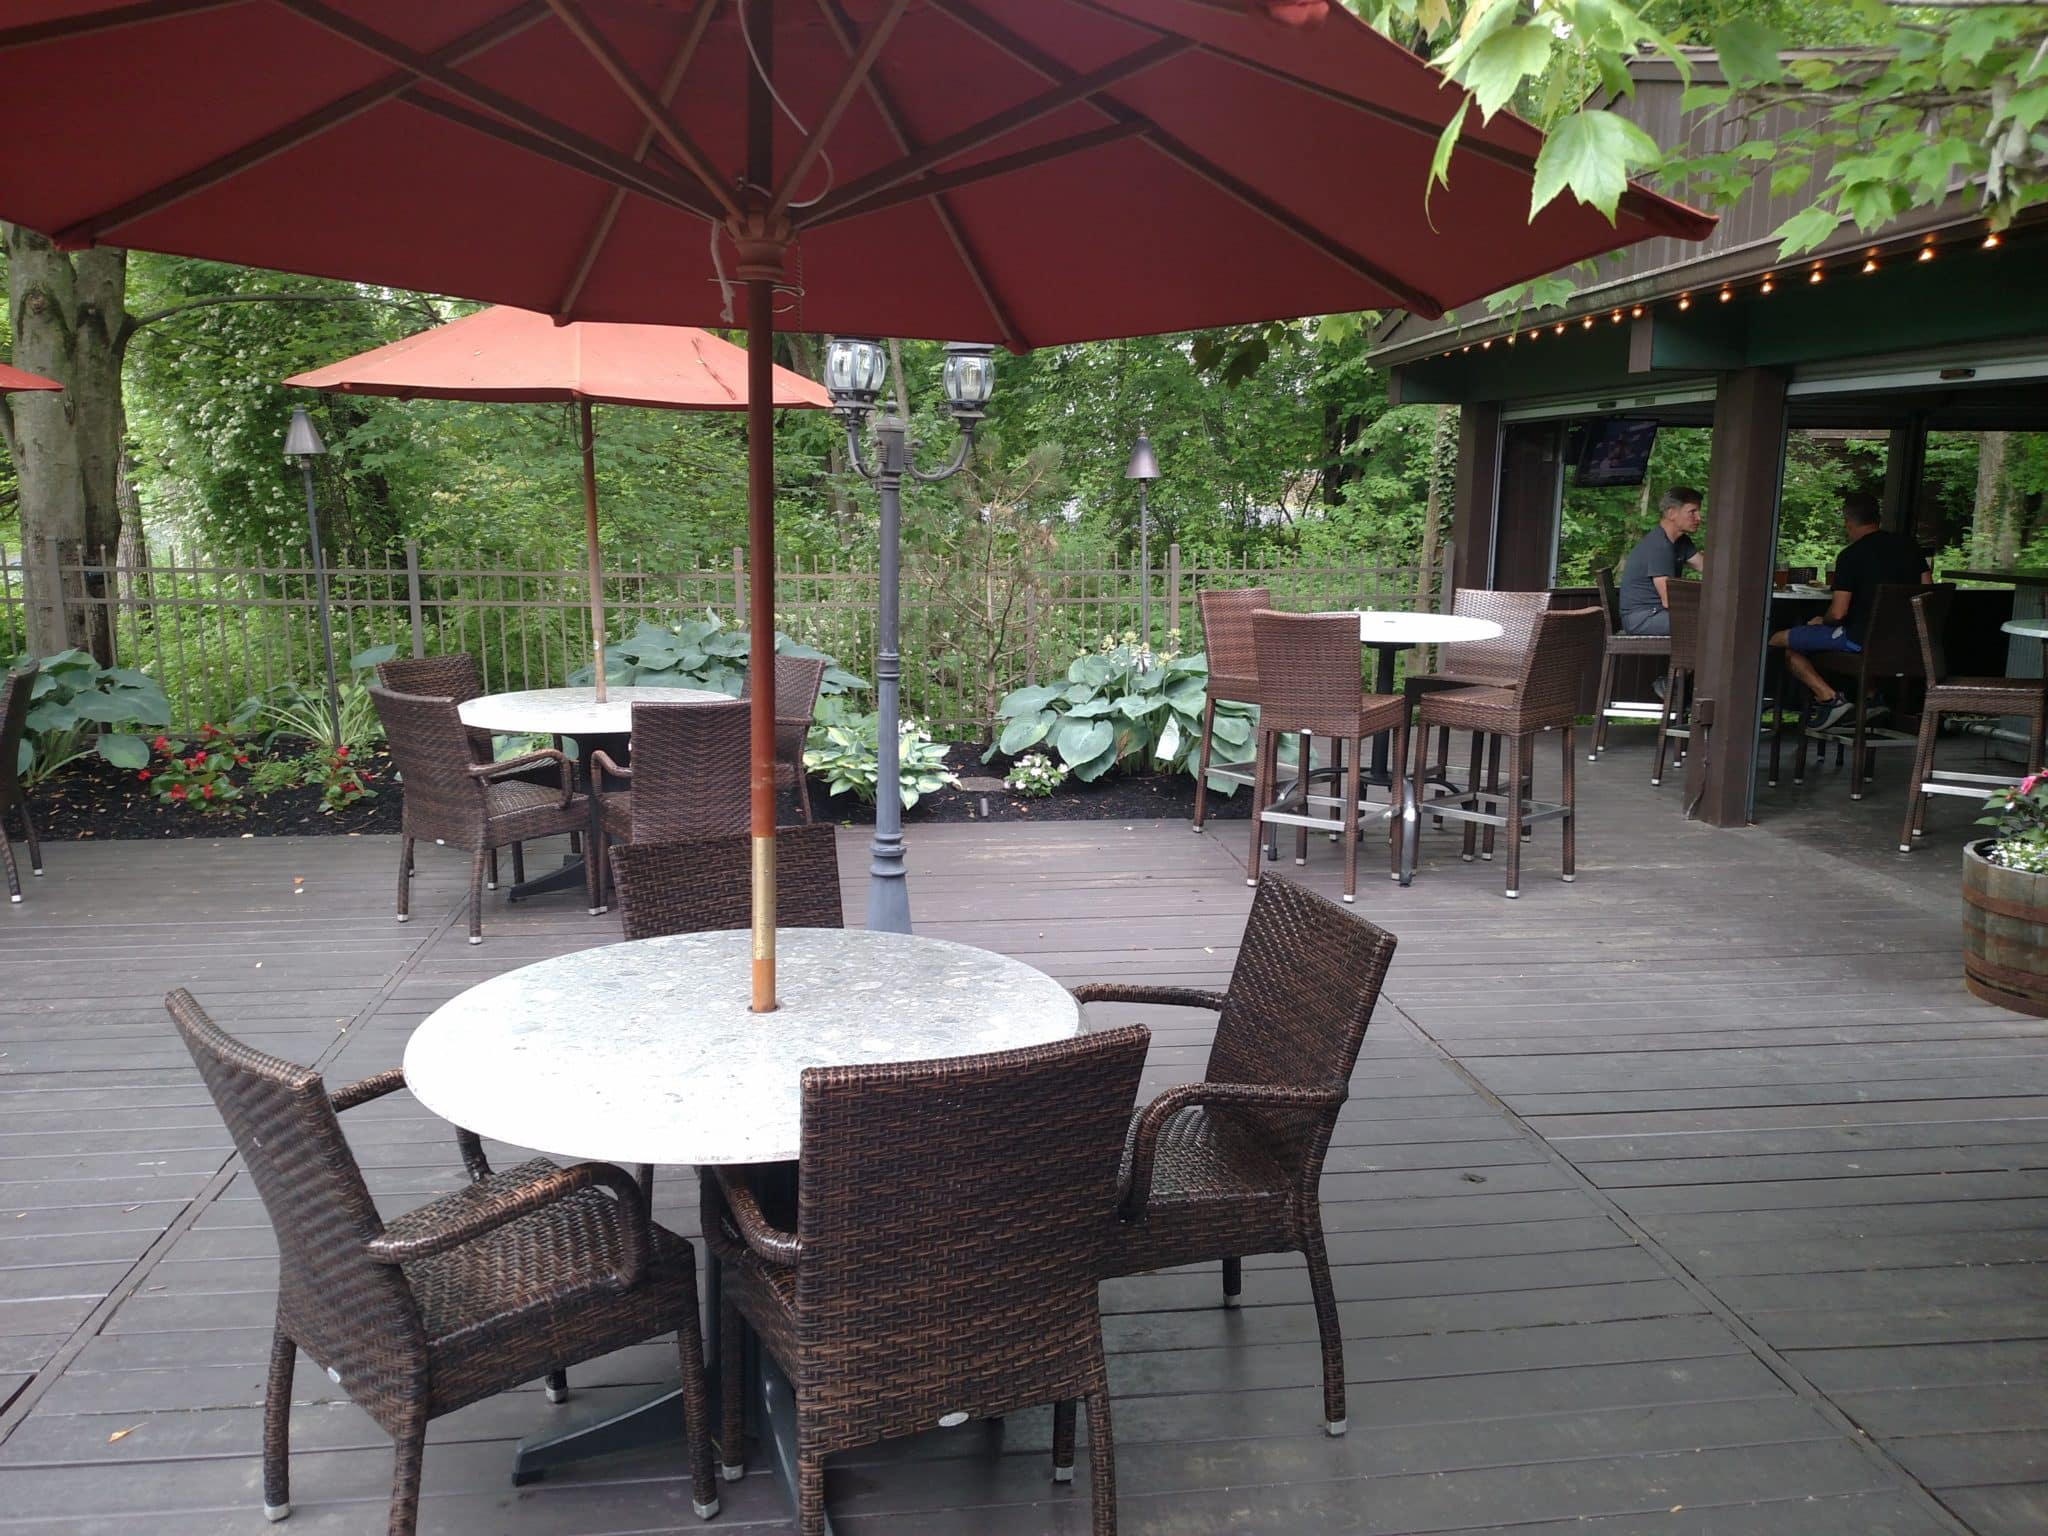 the deck of the hide a way showing covered tables and chairs